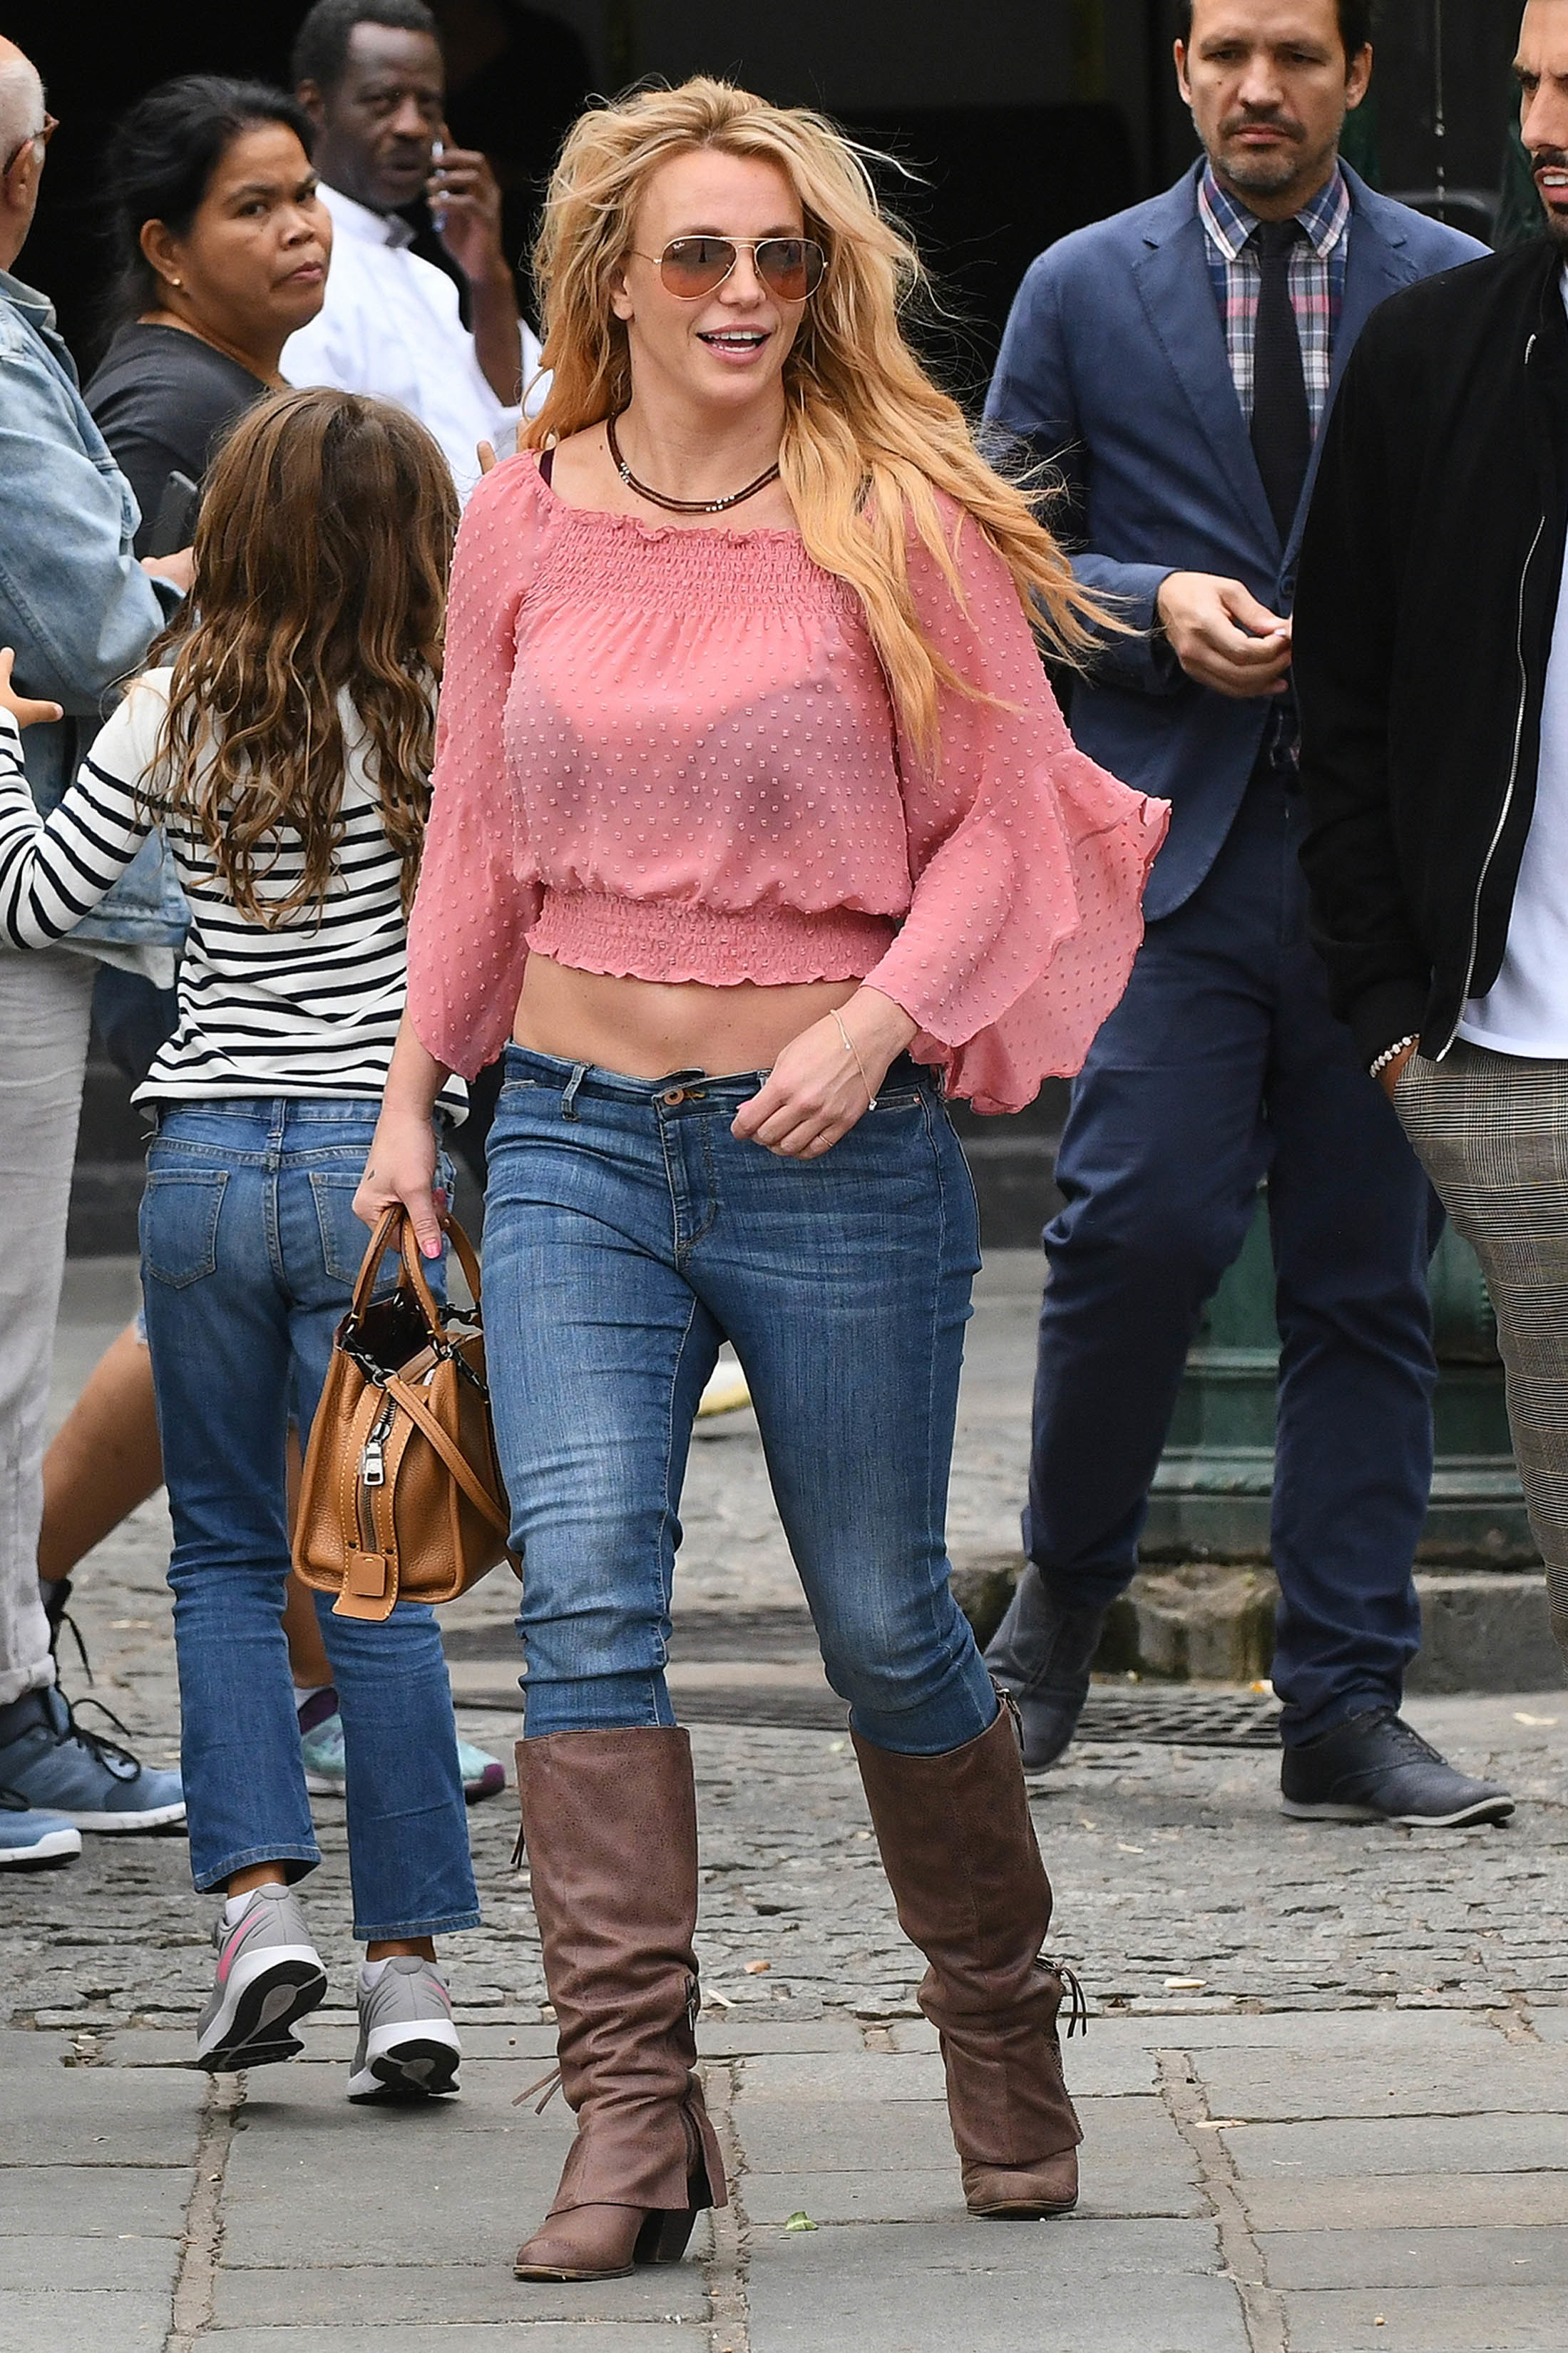 Britney Spears leaves lunch at the Societe Restaurant in Paris on Aug. 28, 2018.